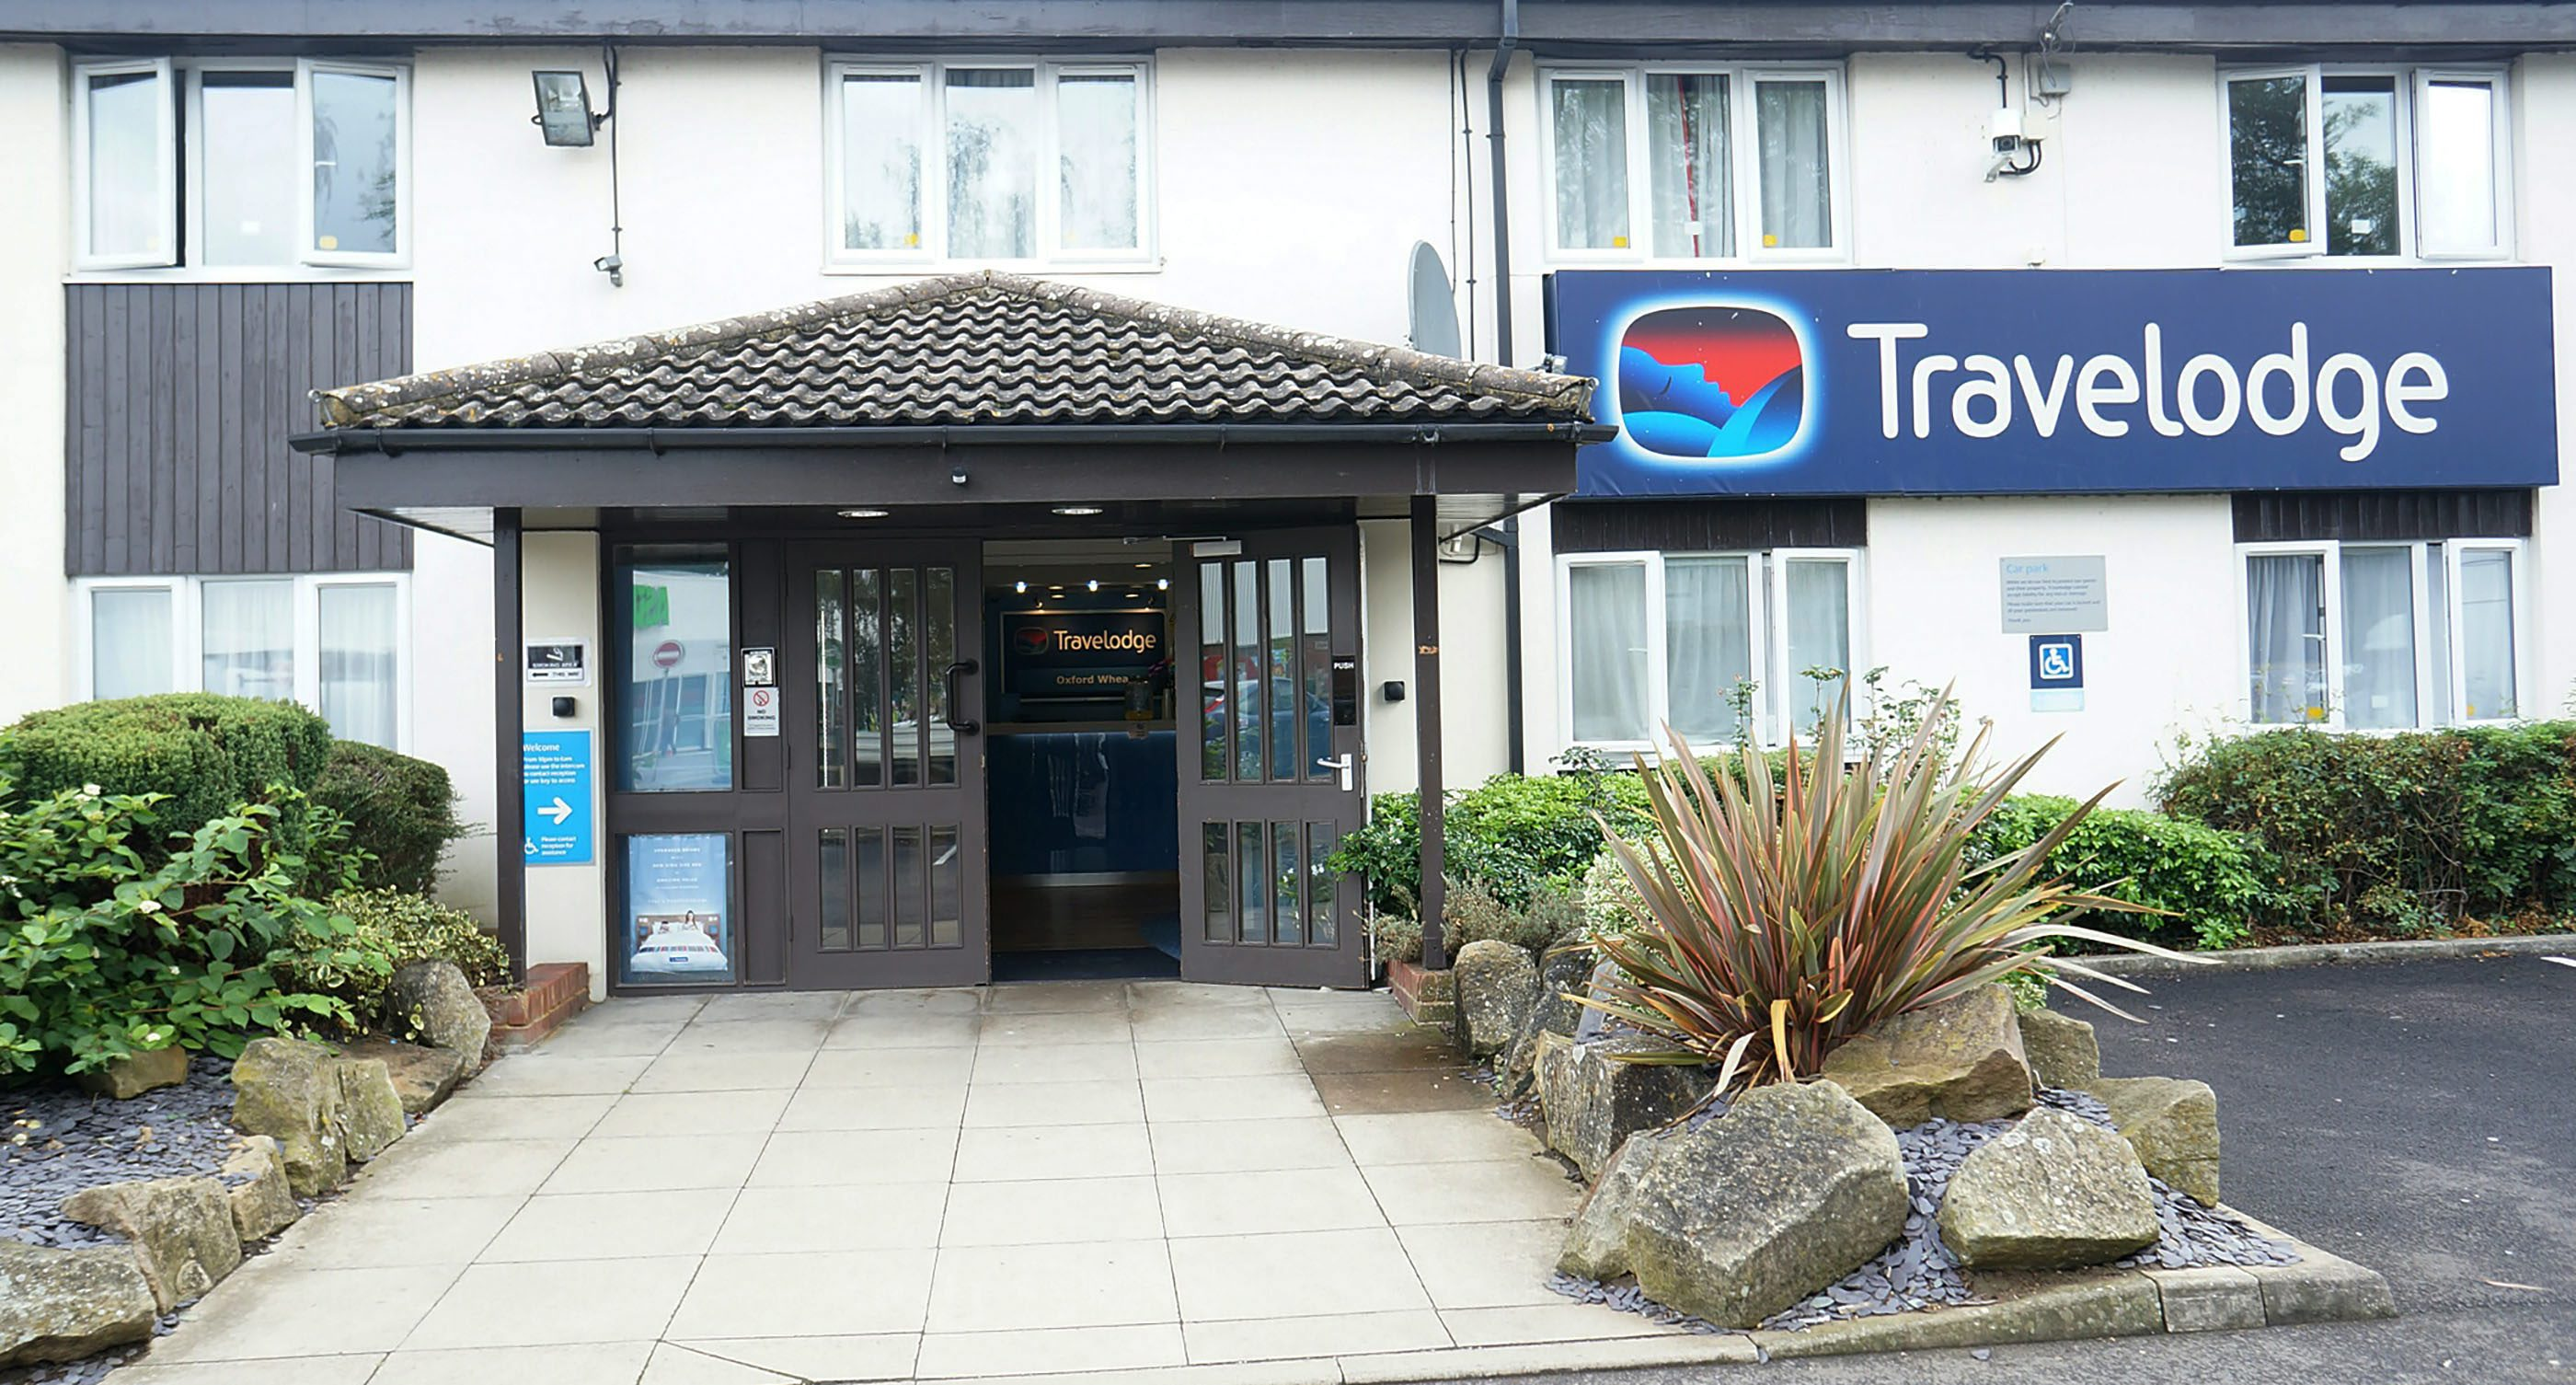 The Travelodge in Wheatlet, Oxford where Harmony was staying